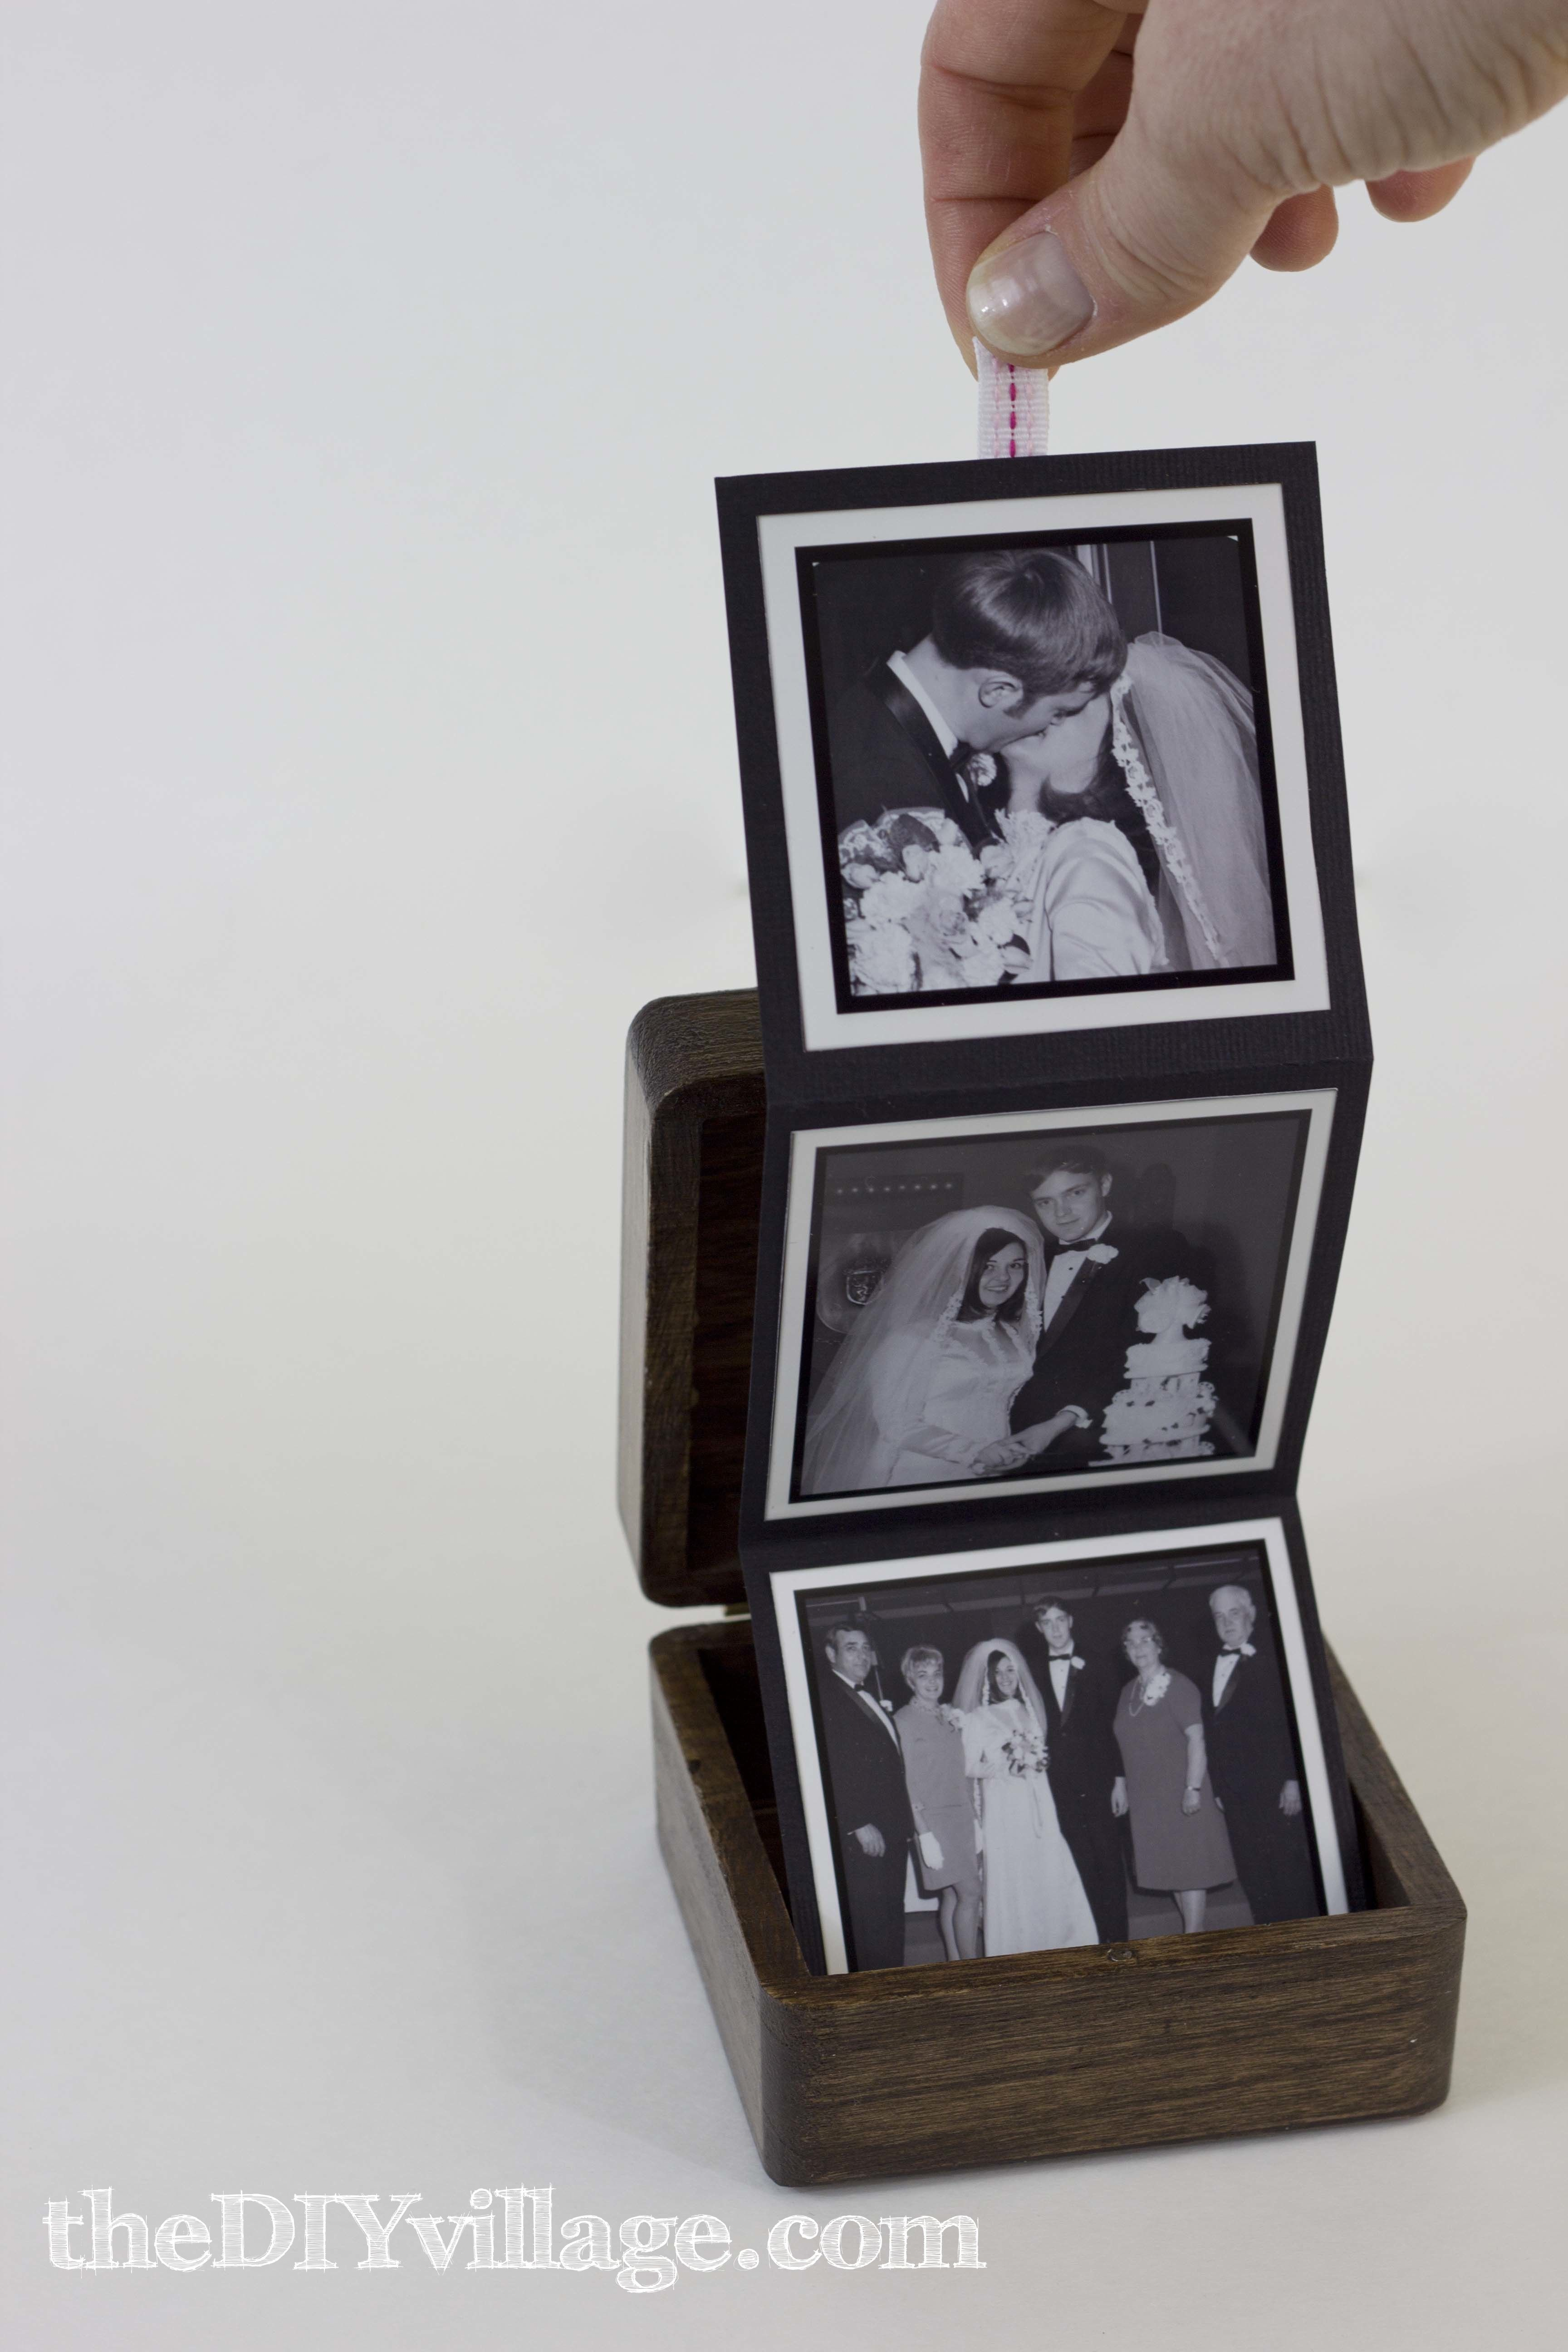 Original gifts from photographs